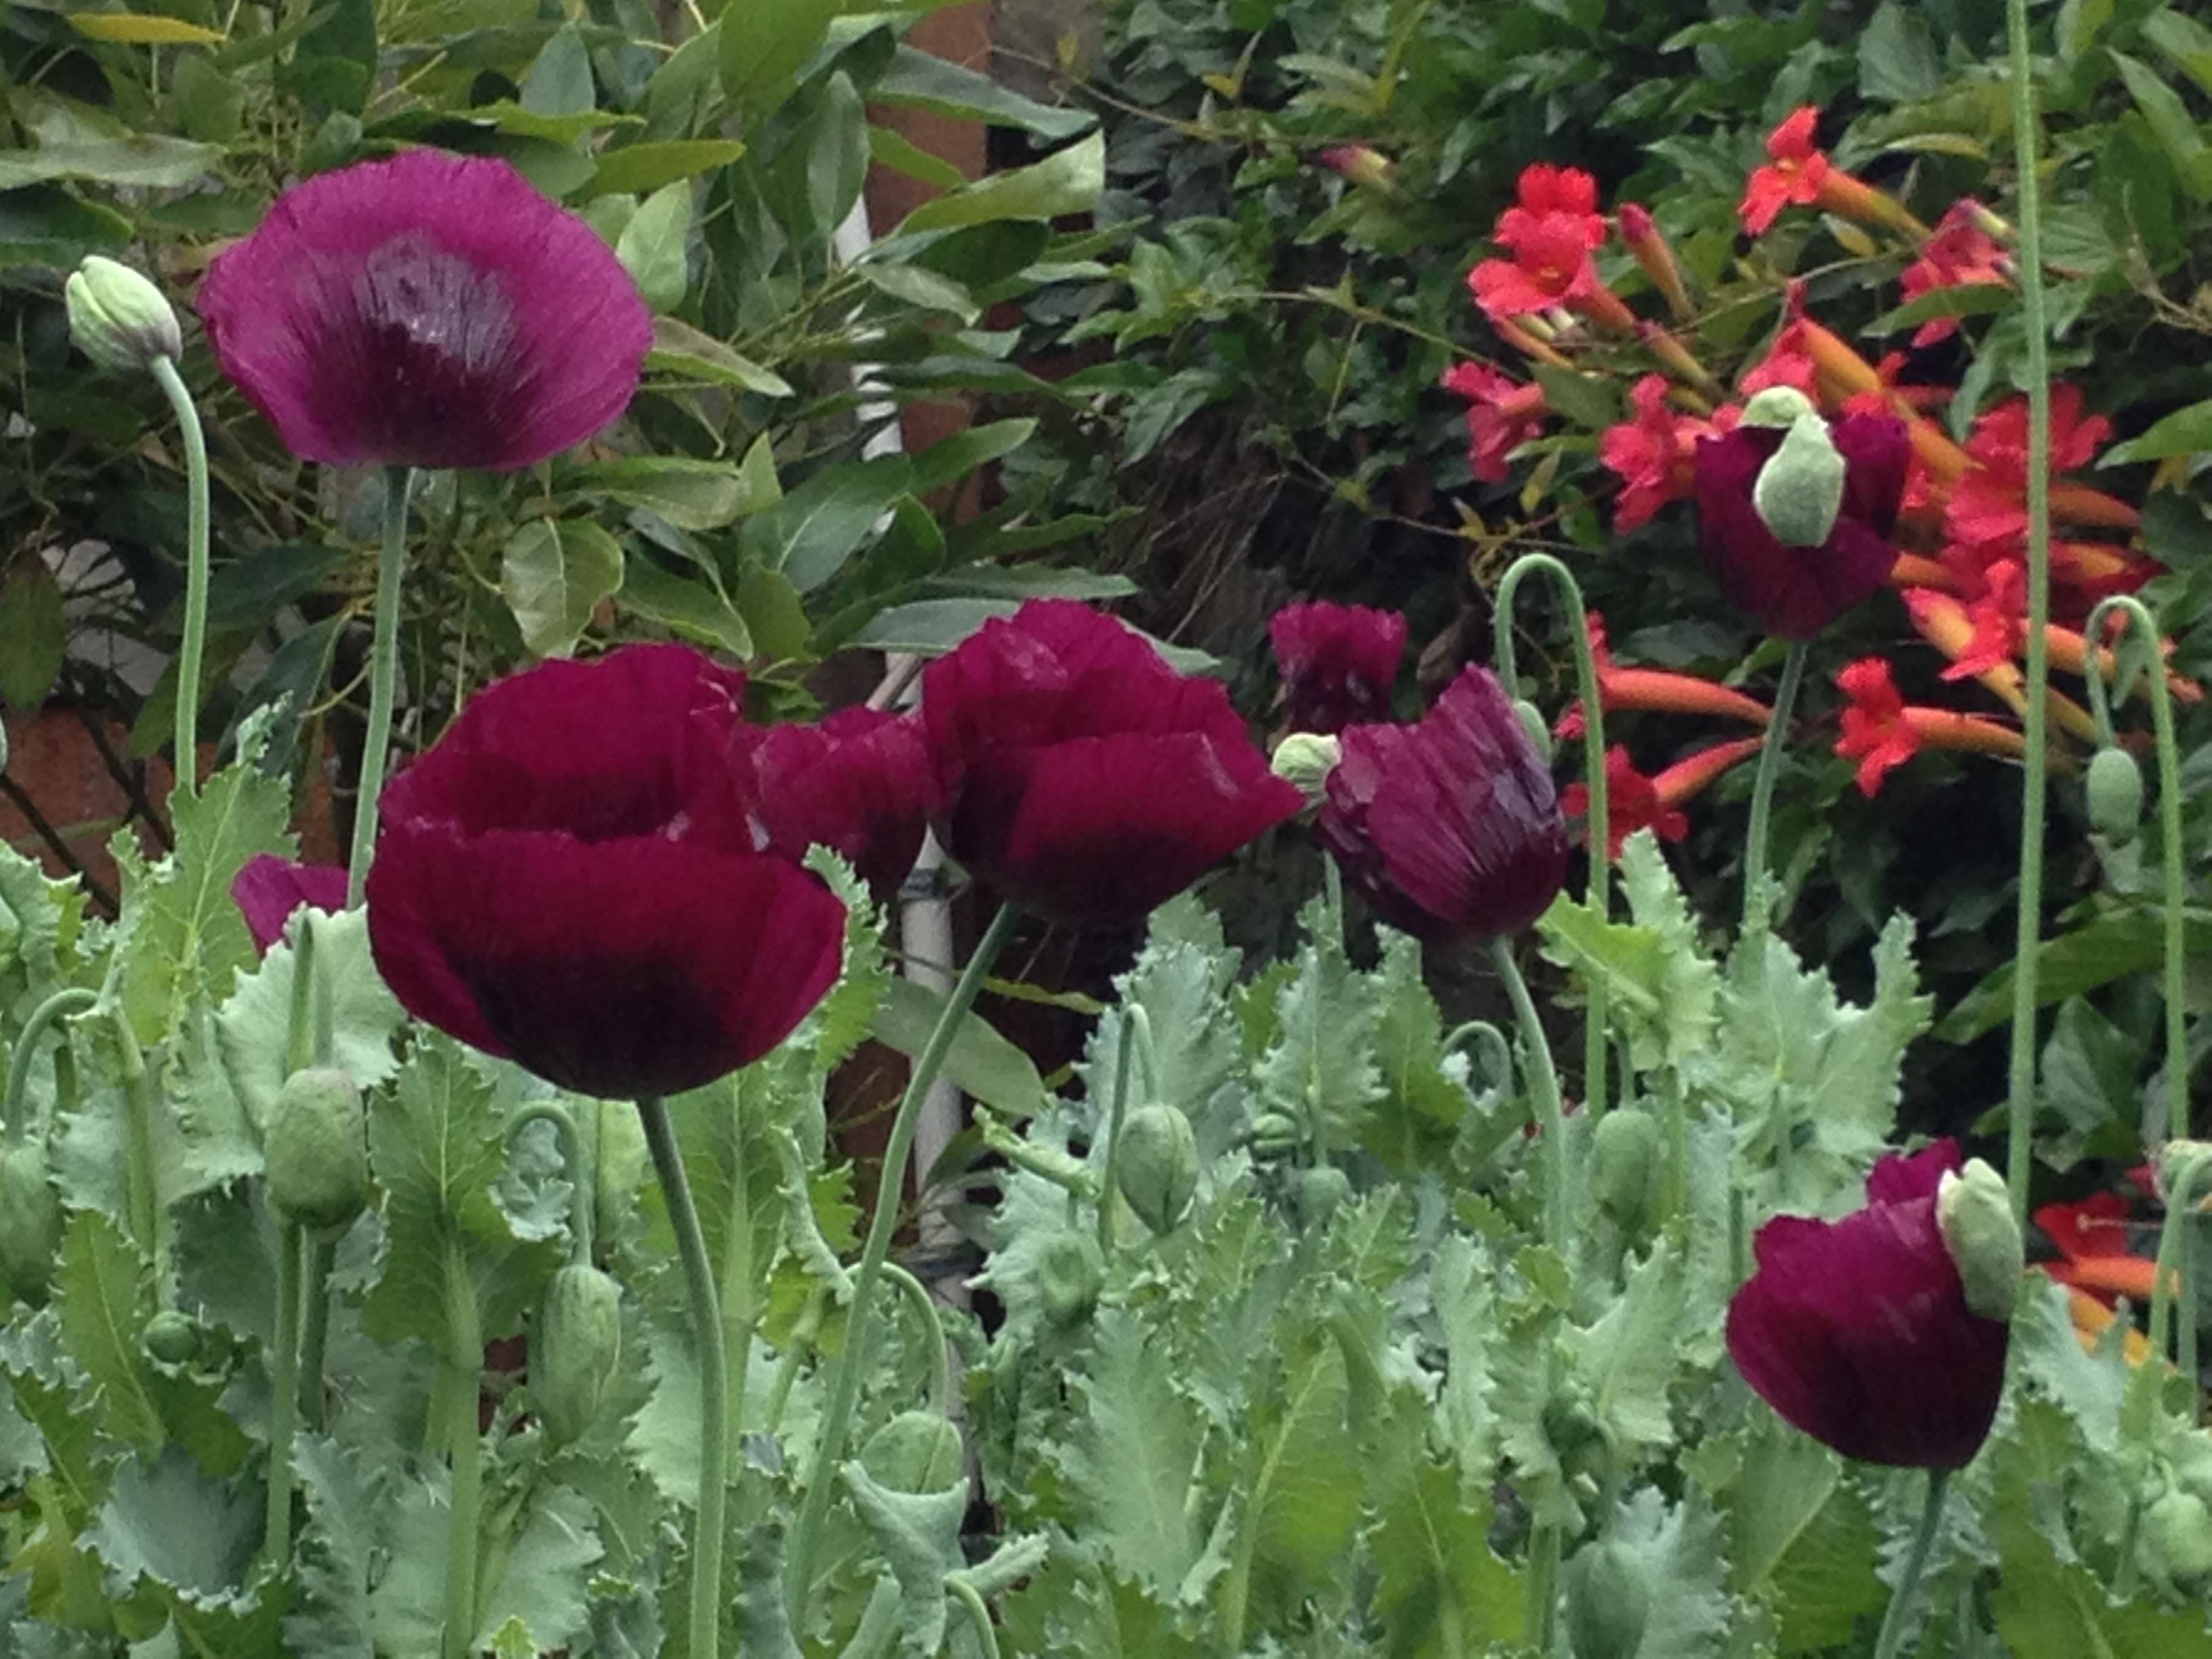 Laurens grape from annies annuals and perenniels the most laurens grape from annies annuals and perenniels the most beautiful poppy ever 5 feet izmirmasajfo Choice Image